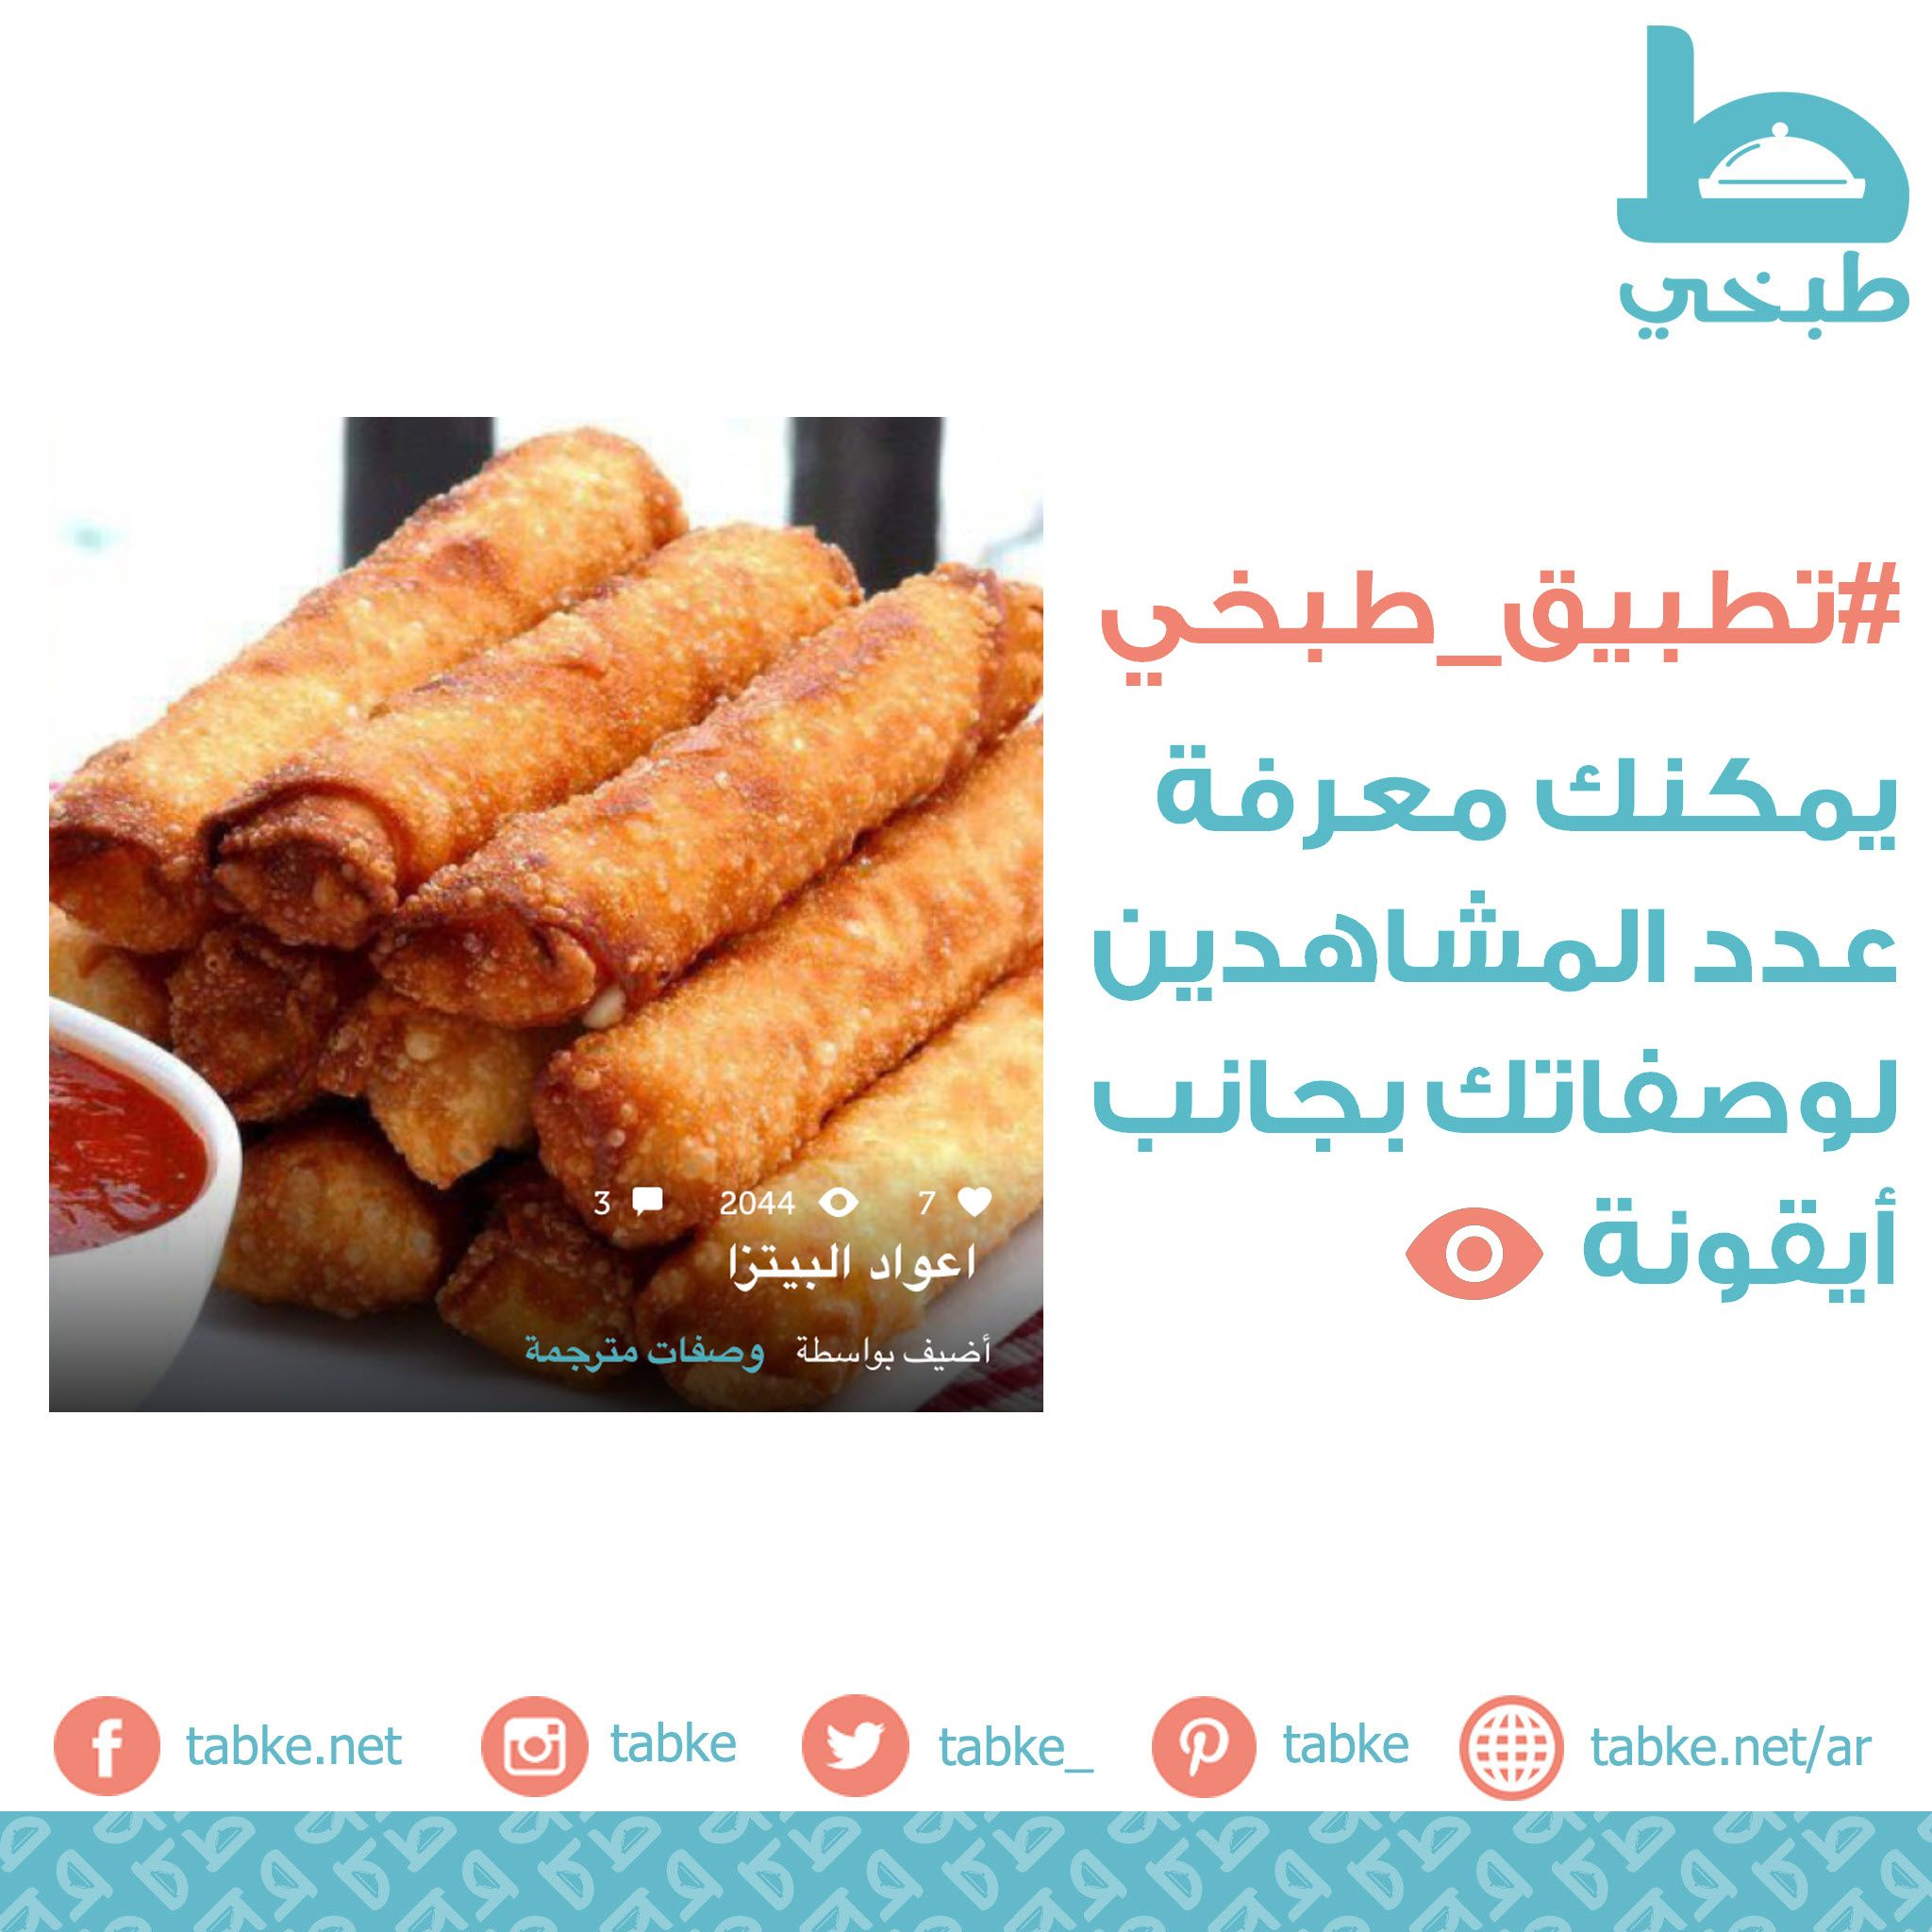 Tabke For Recipes طبخي On The App Store Recipes Food Breakfast